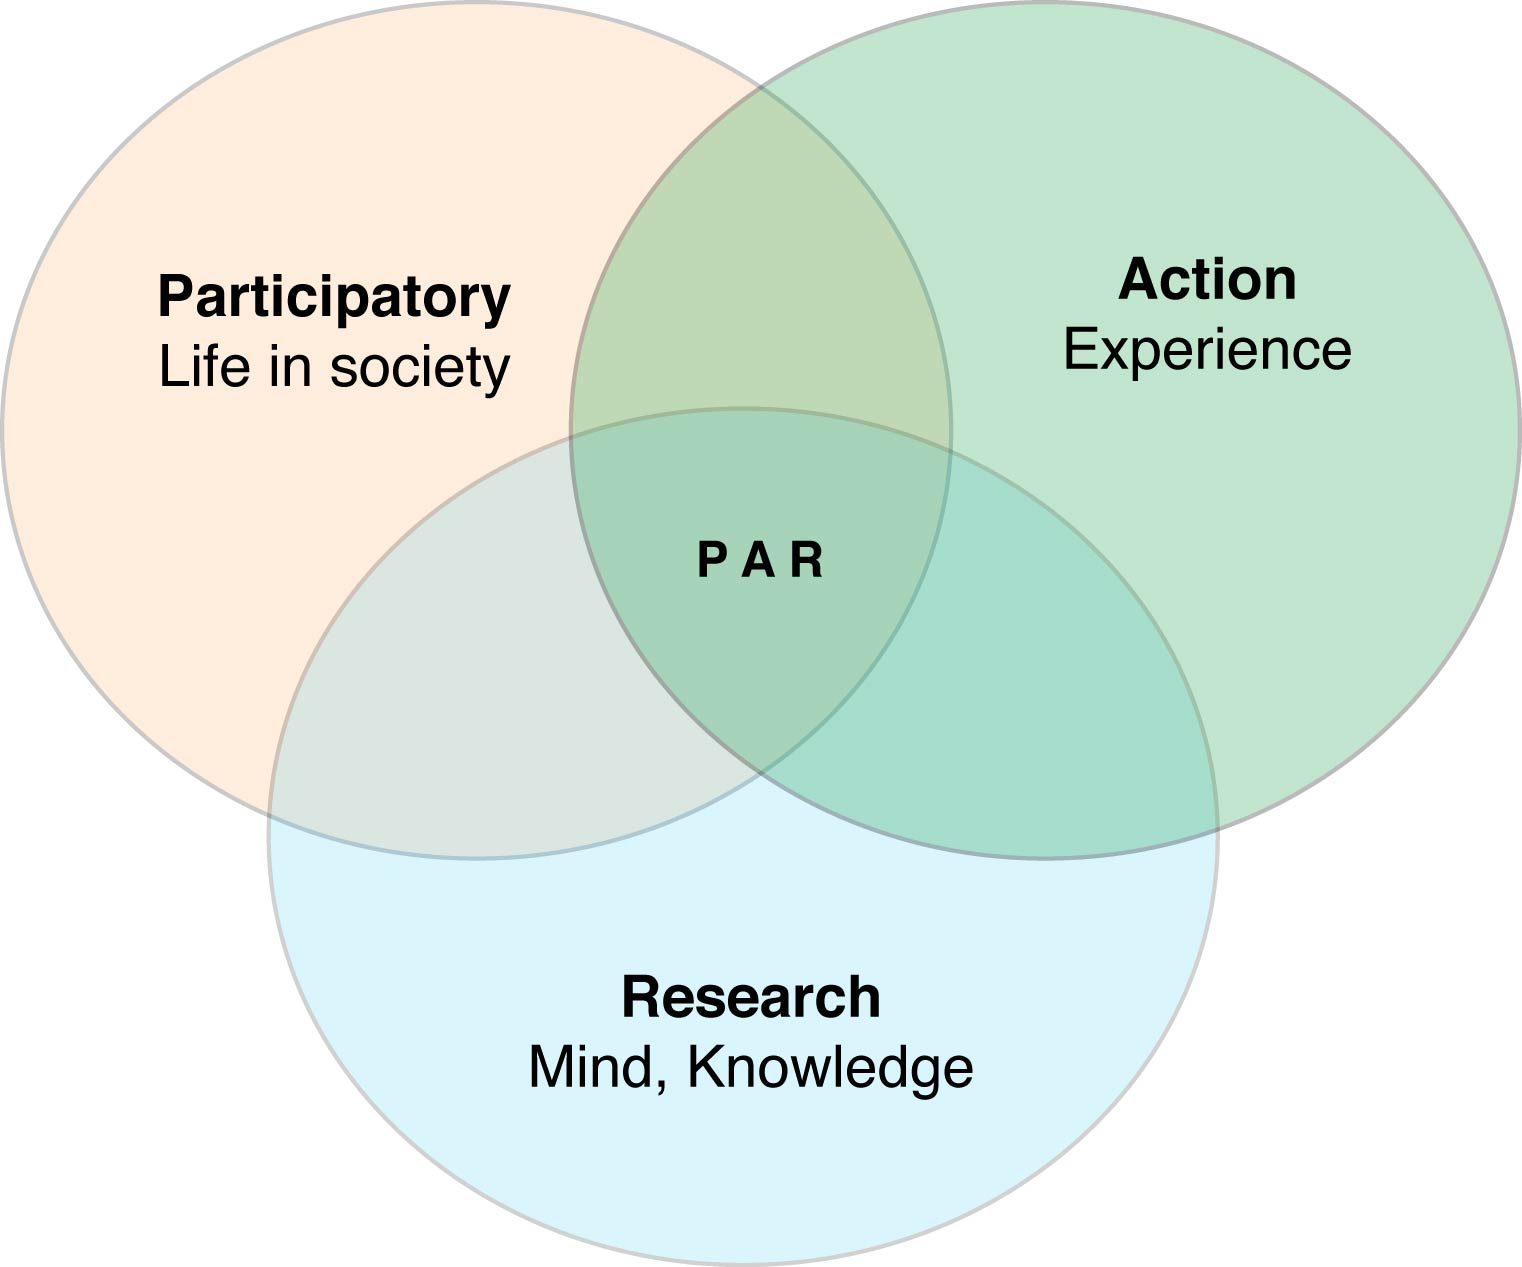 Venn Diagram Template: Venn diagram of Participatory Action Research.jpg - Wikipedia,Chart